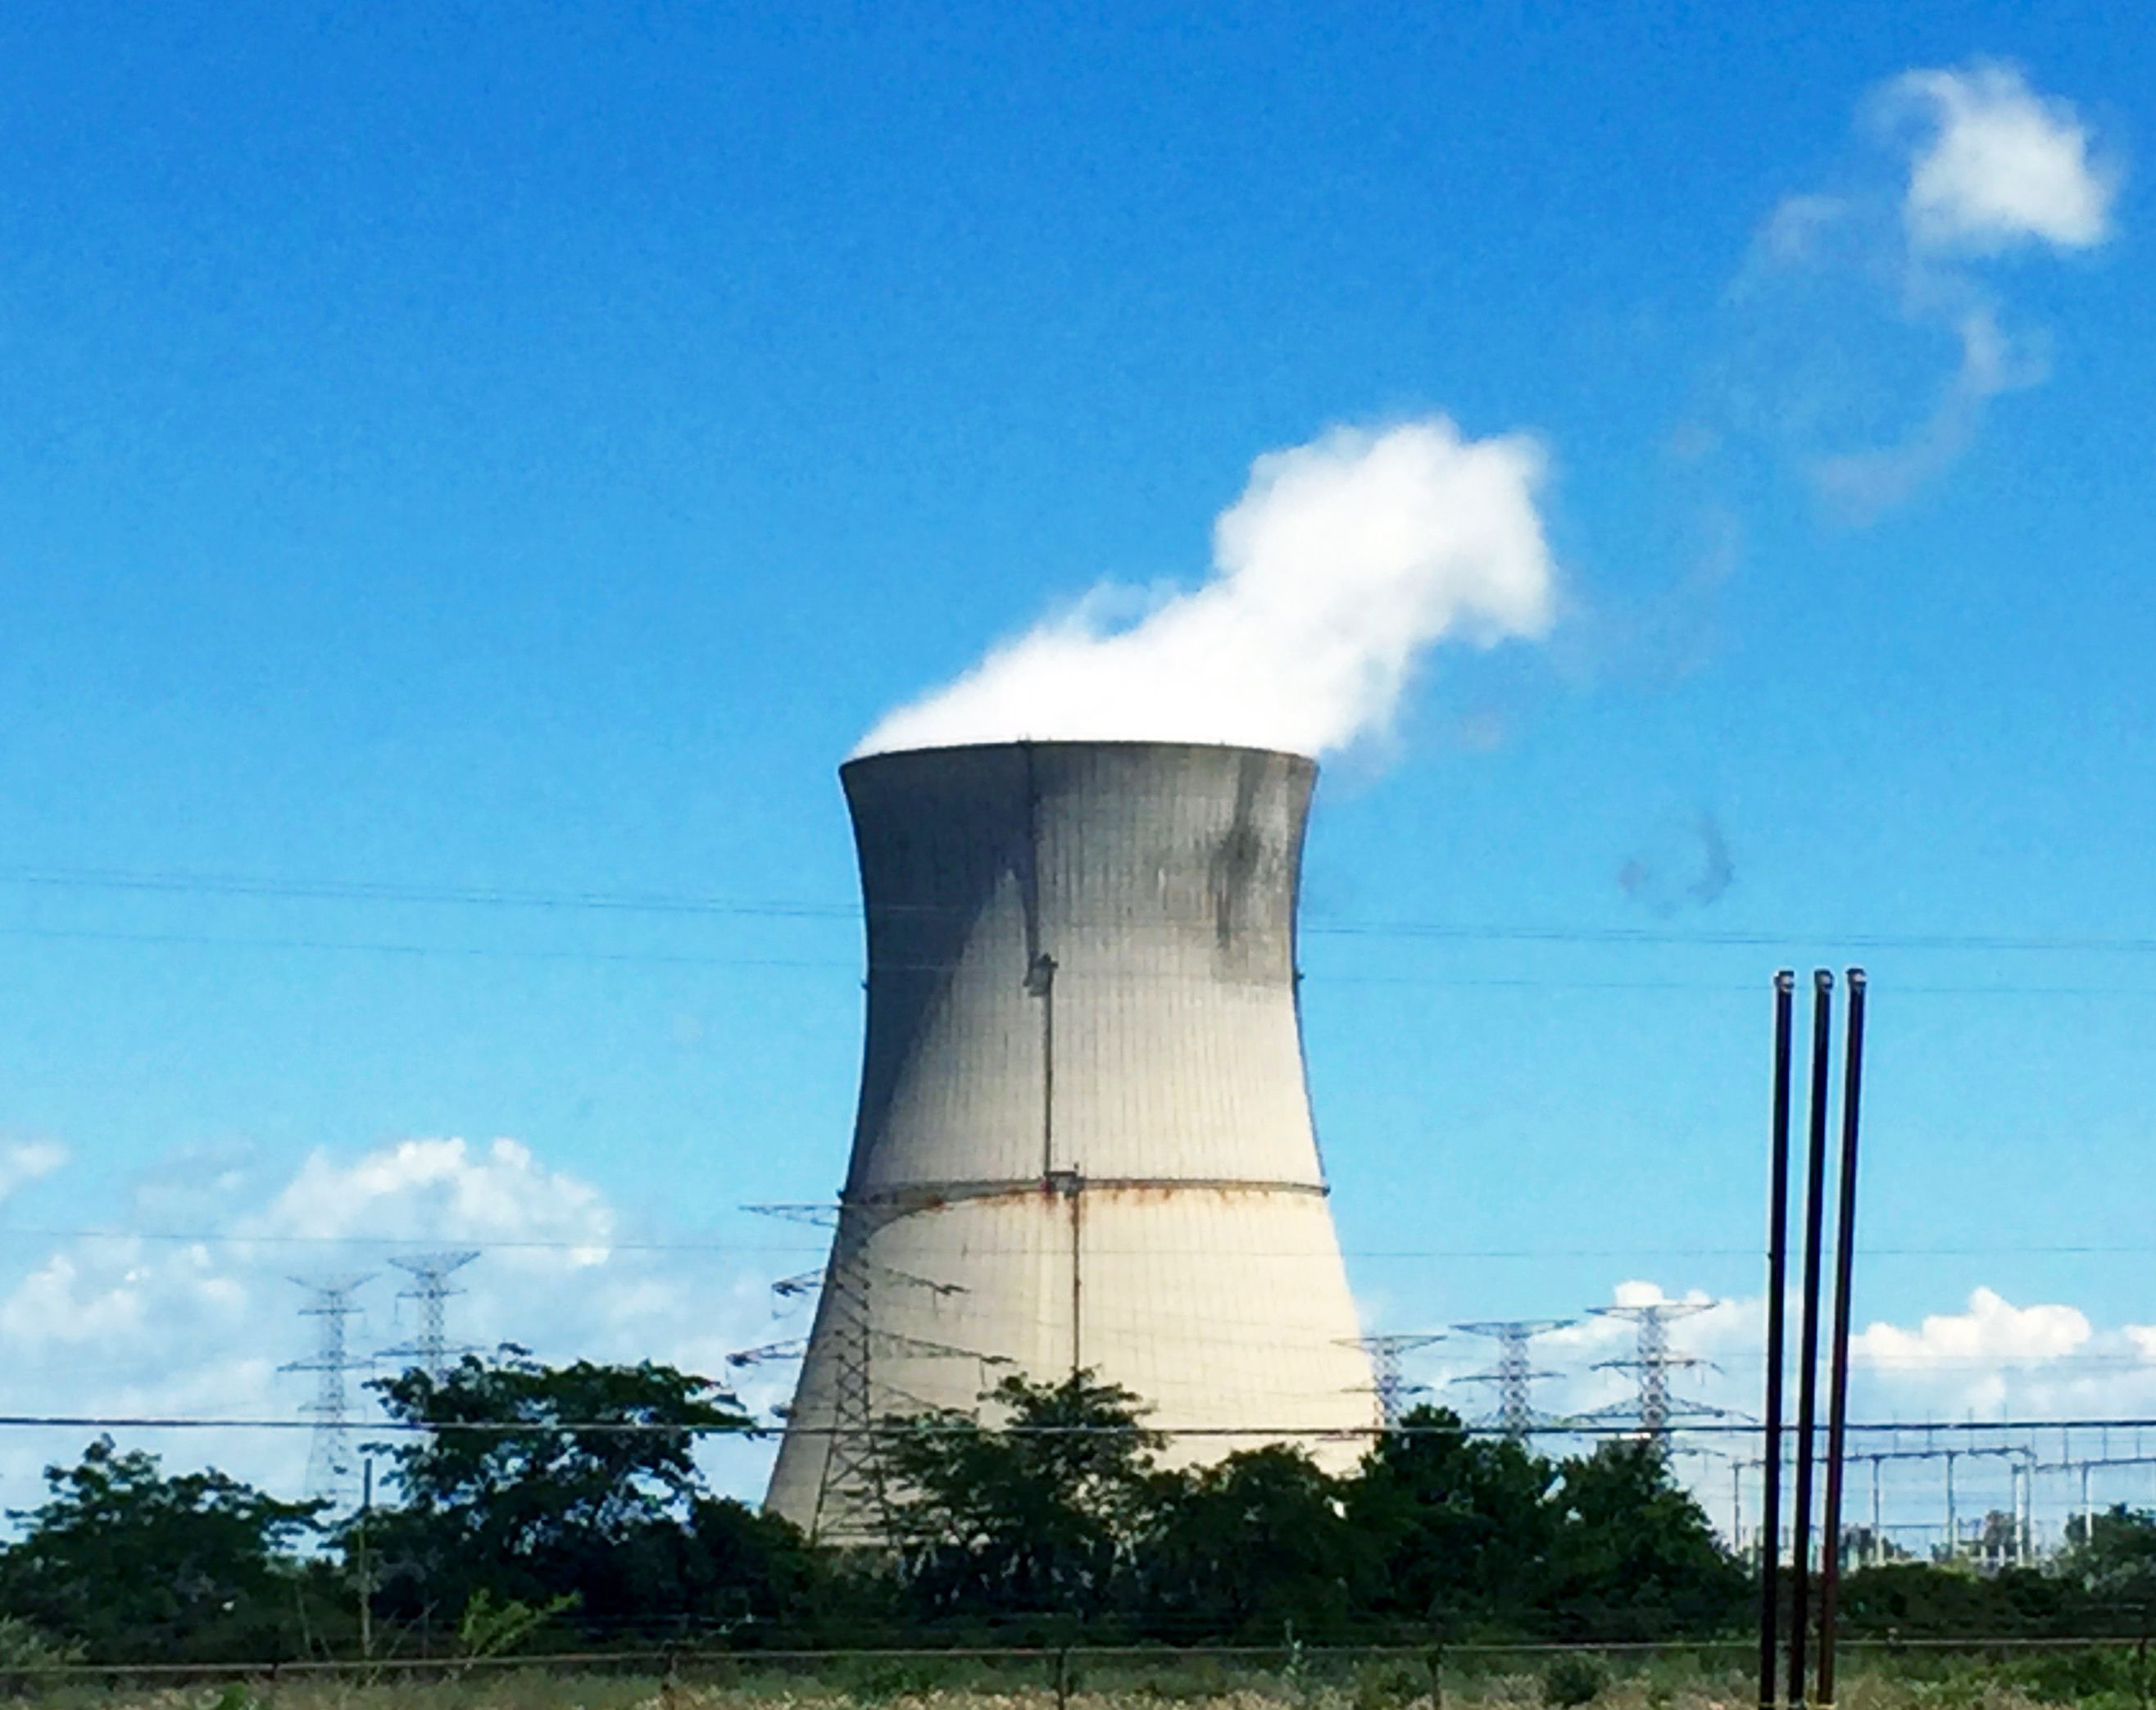 Ohio coal and nuclear plants like Davis-Besse could get a ratepayer bailout at the expense of renewables and energy efficiency.